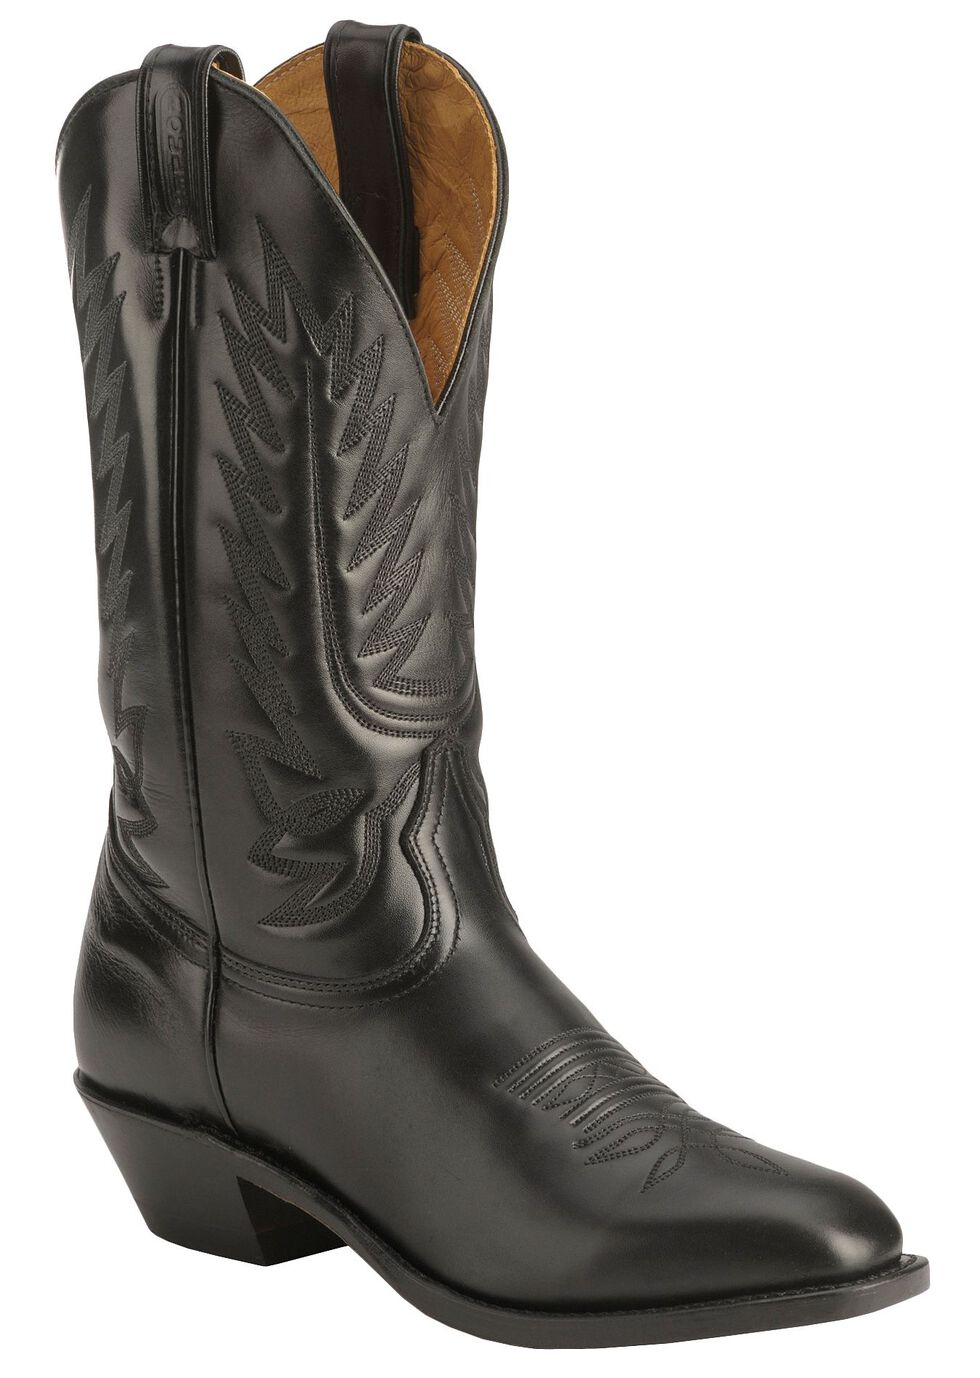 Boulet Dress Cowboy Boots - Square Toe, Black, hi-res